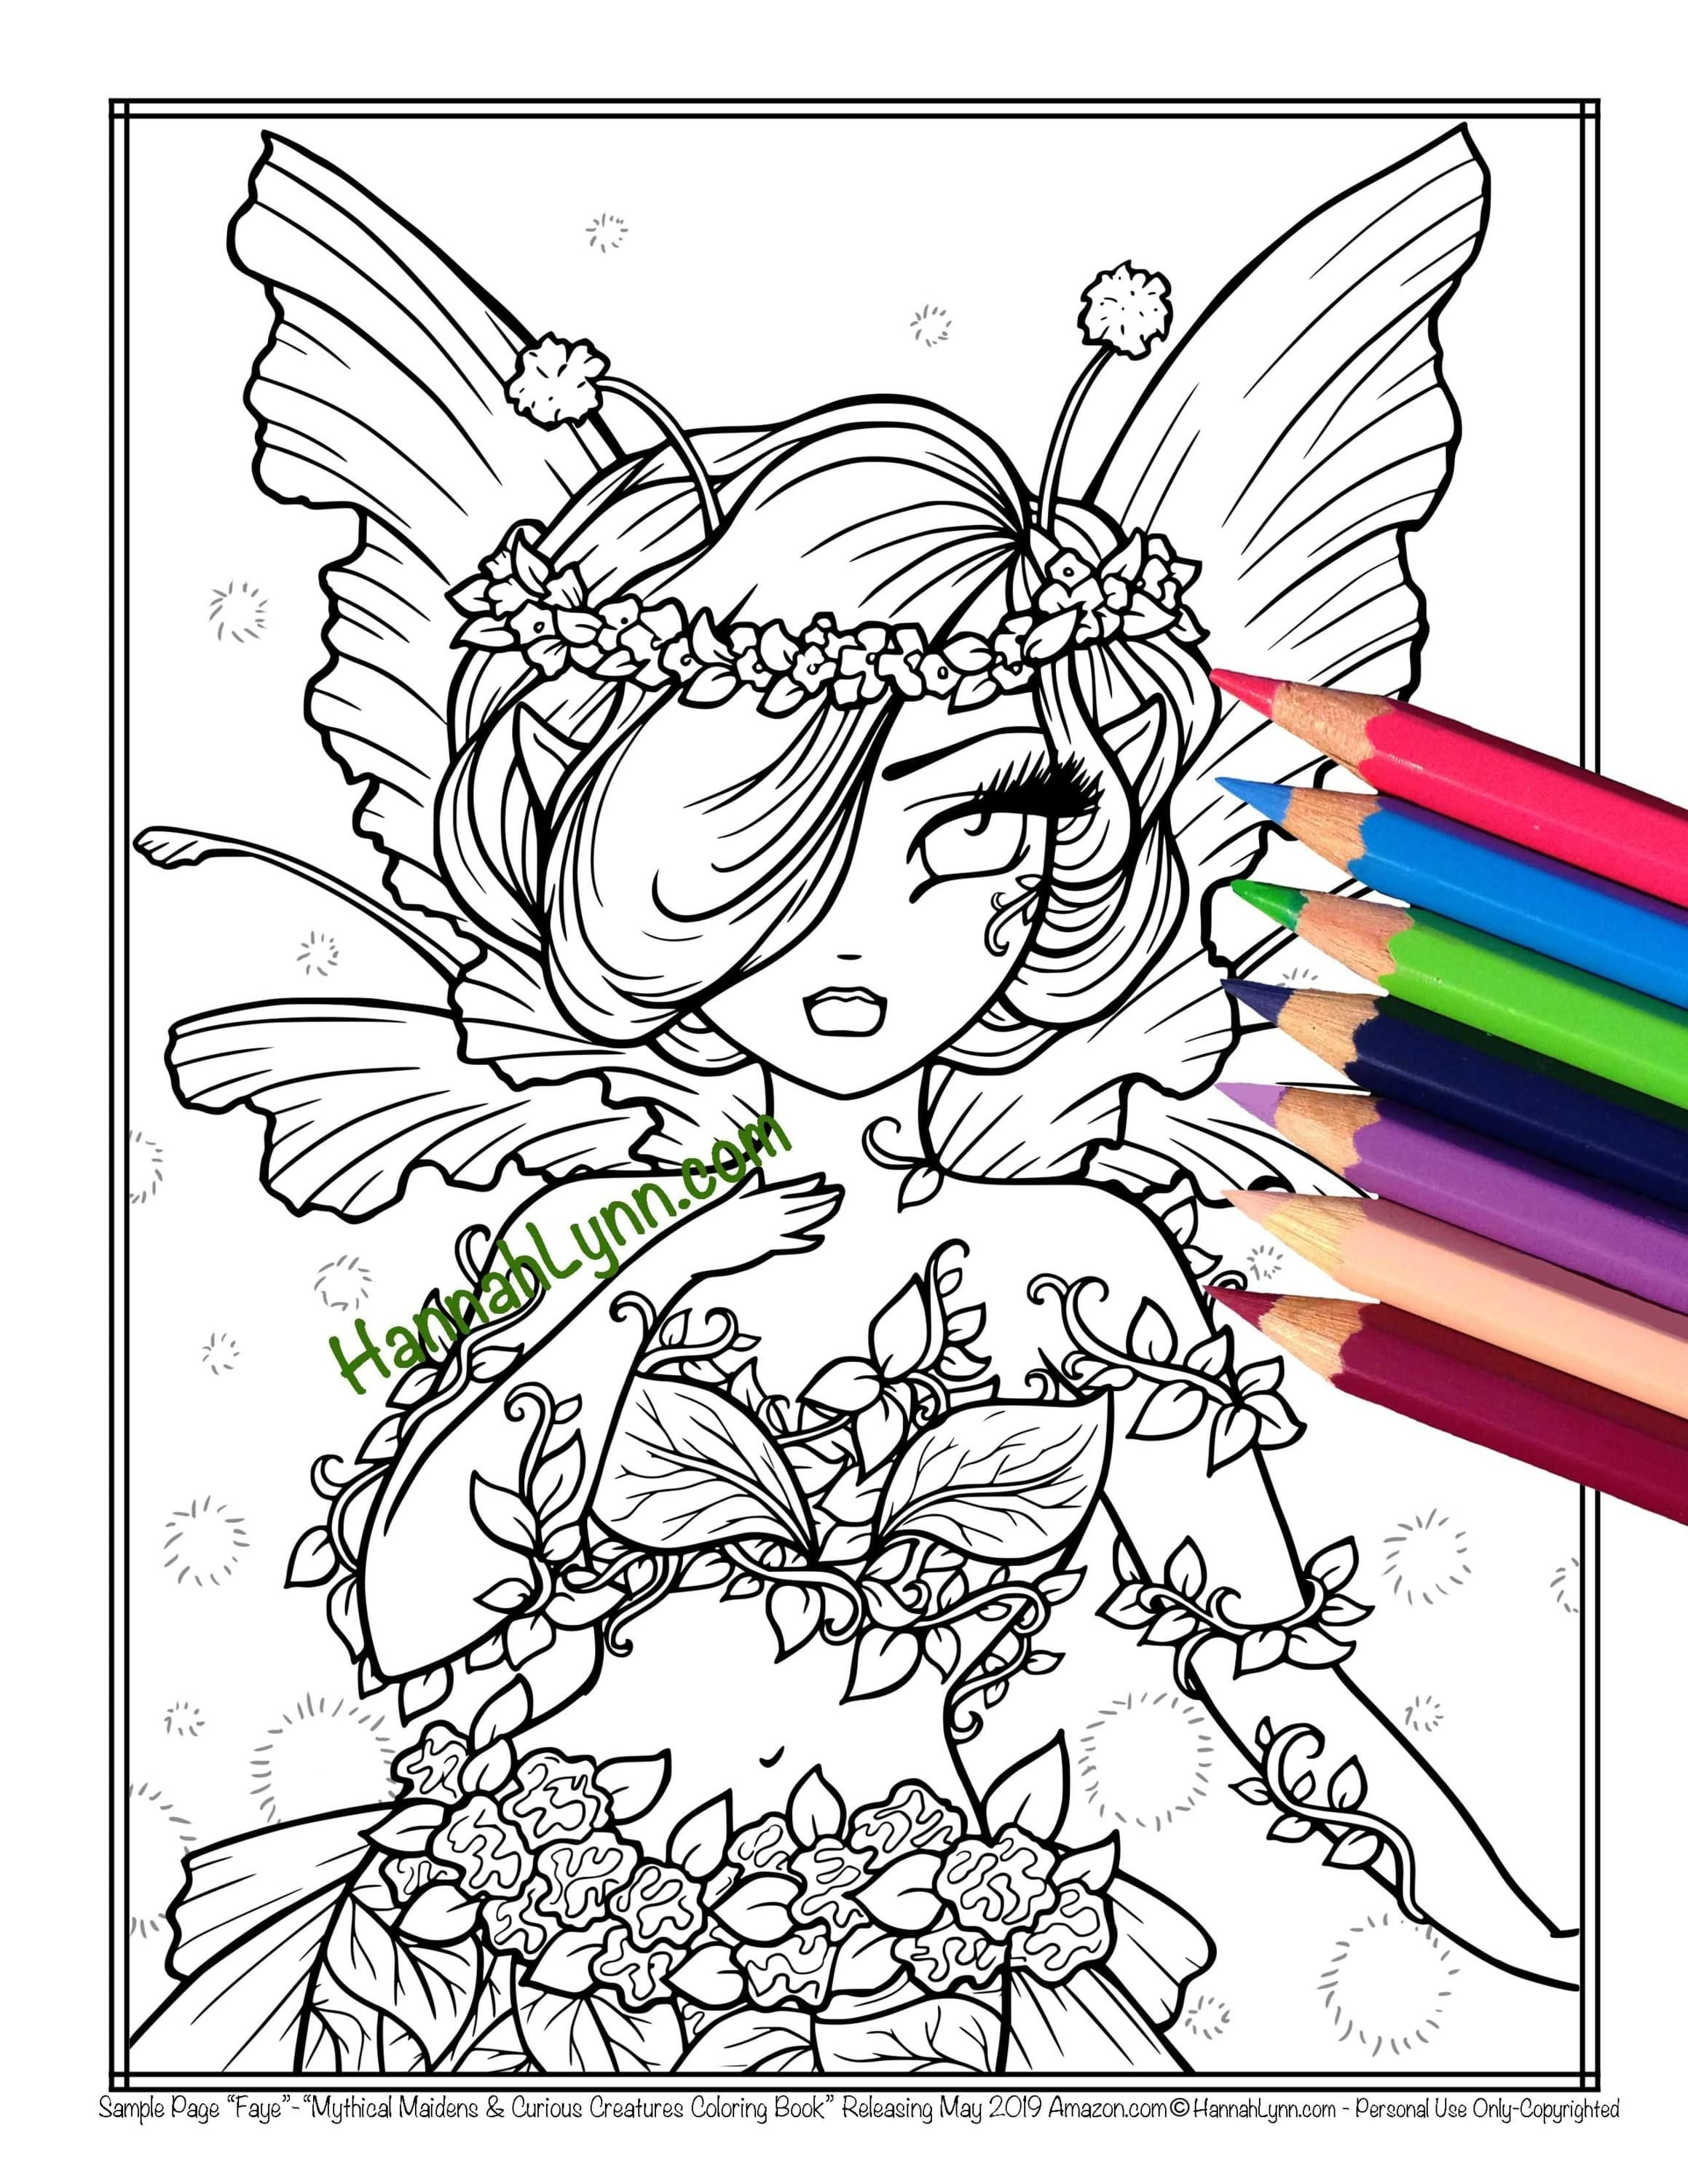 Hannah Lynn Coloring Free Sample Pack Colouring Pages Coloring Books Hannah Lynn